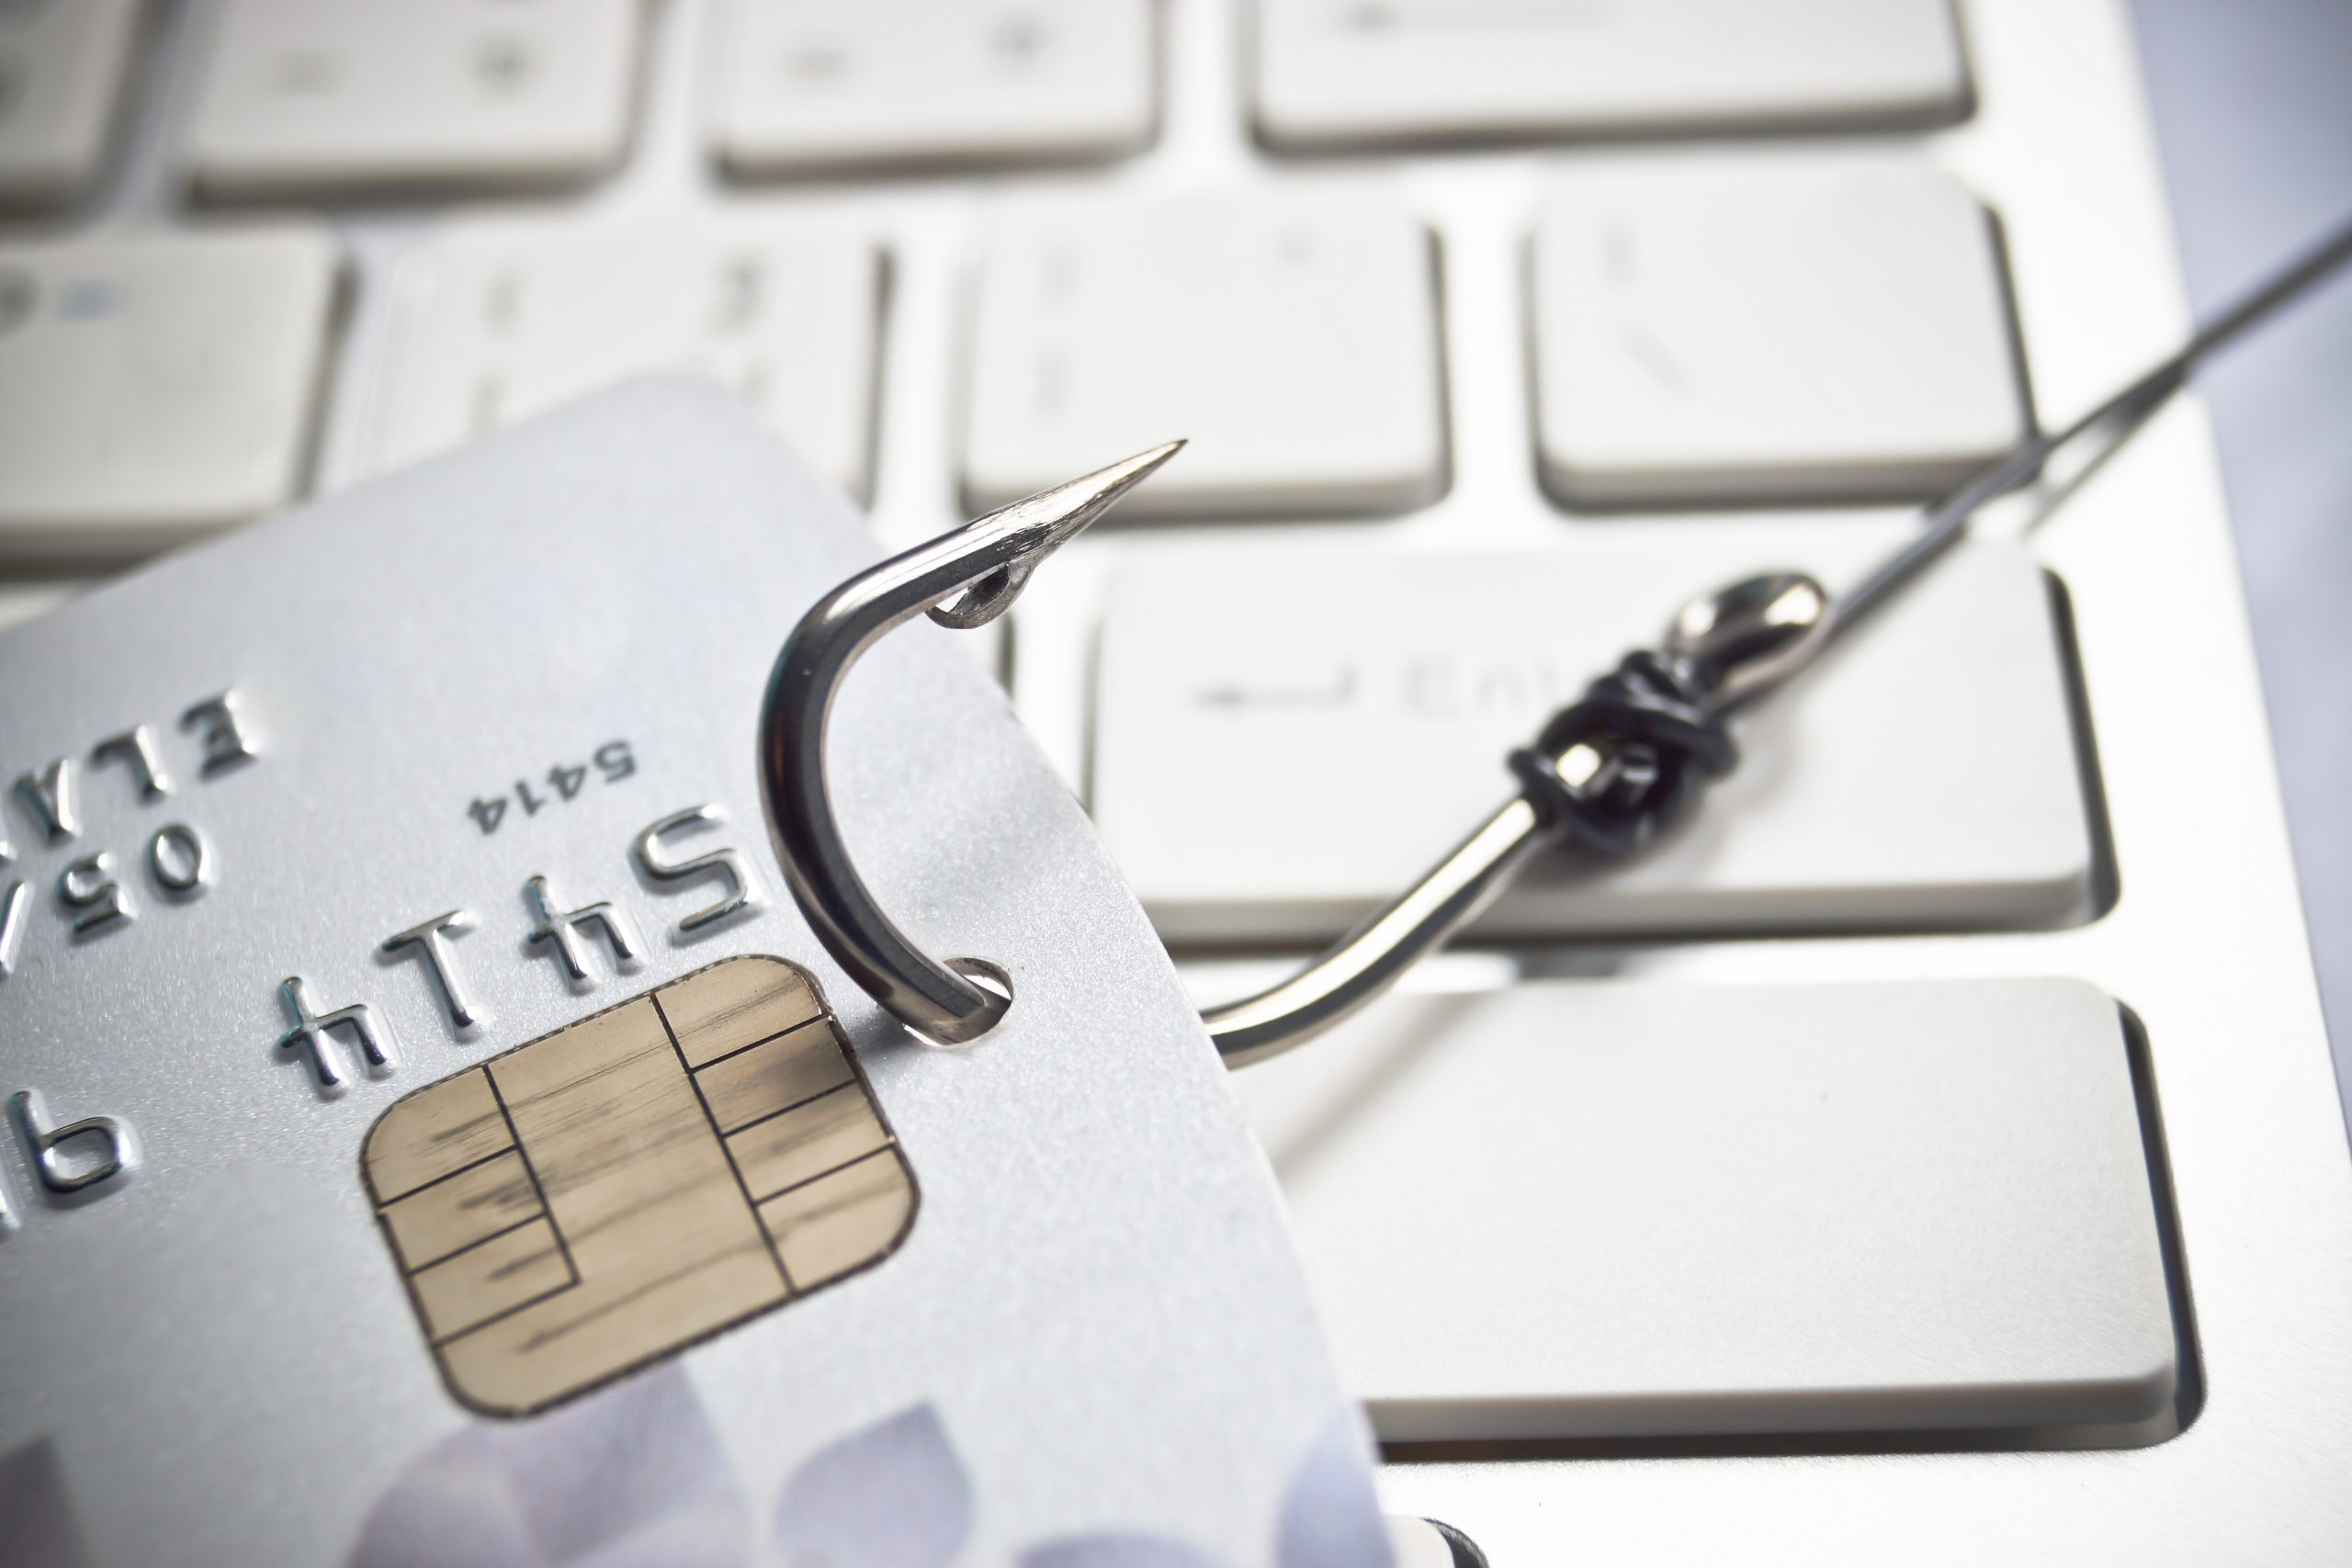 fish hook with a credit card on white computer keyboard